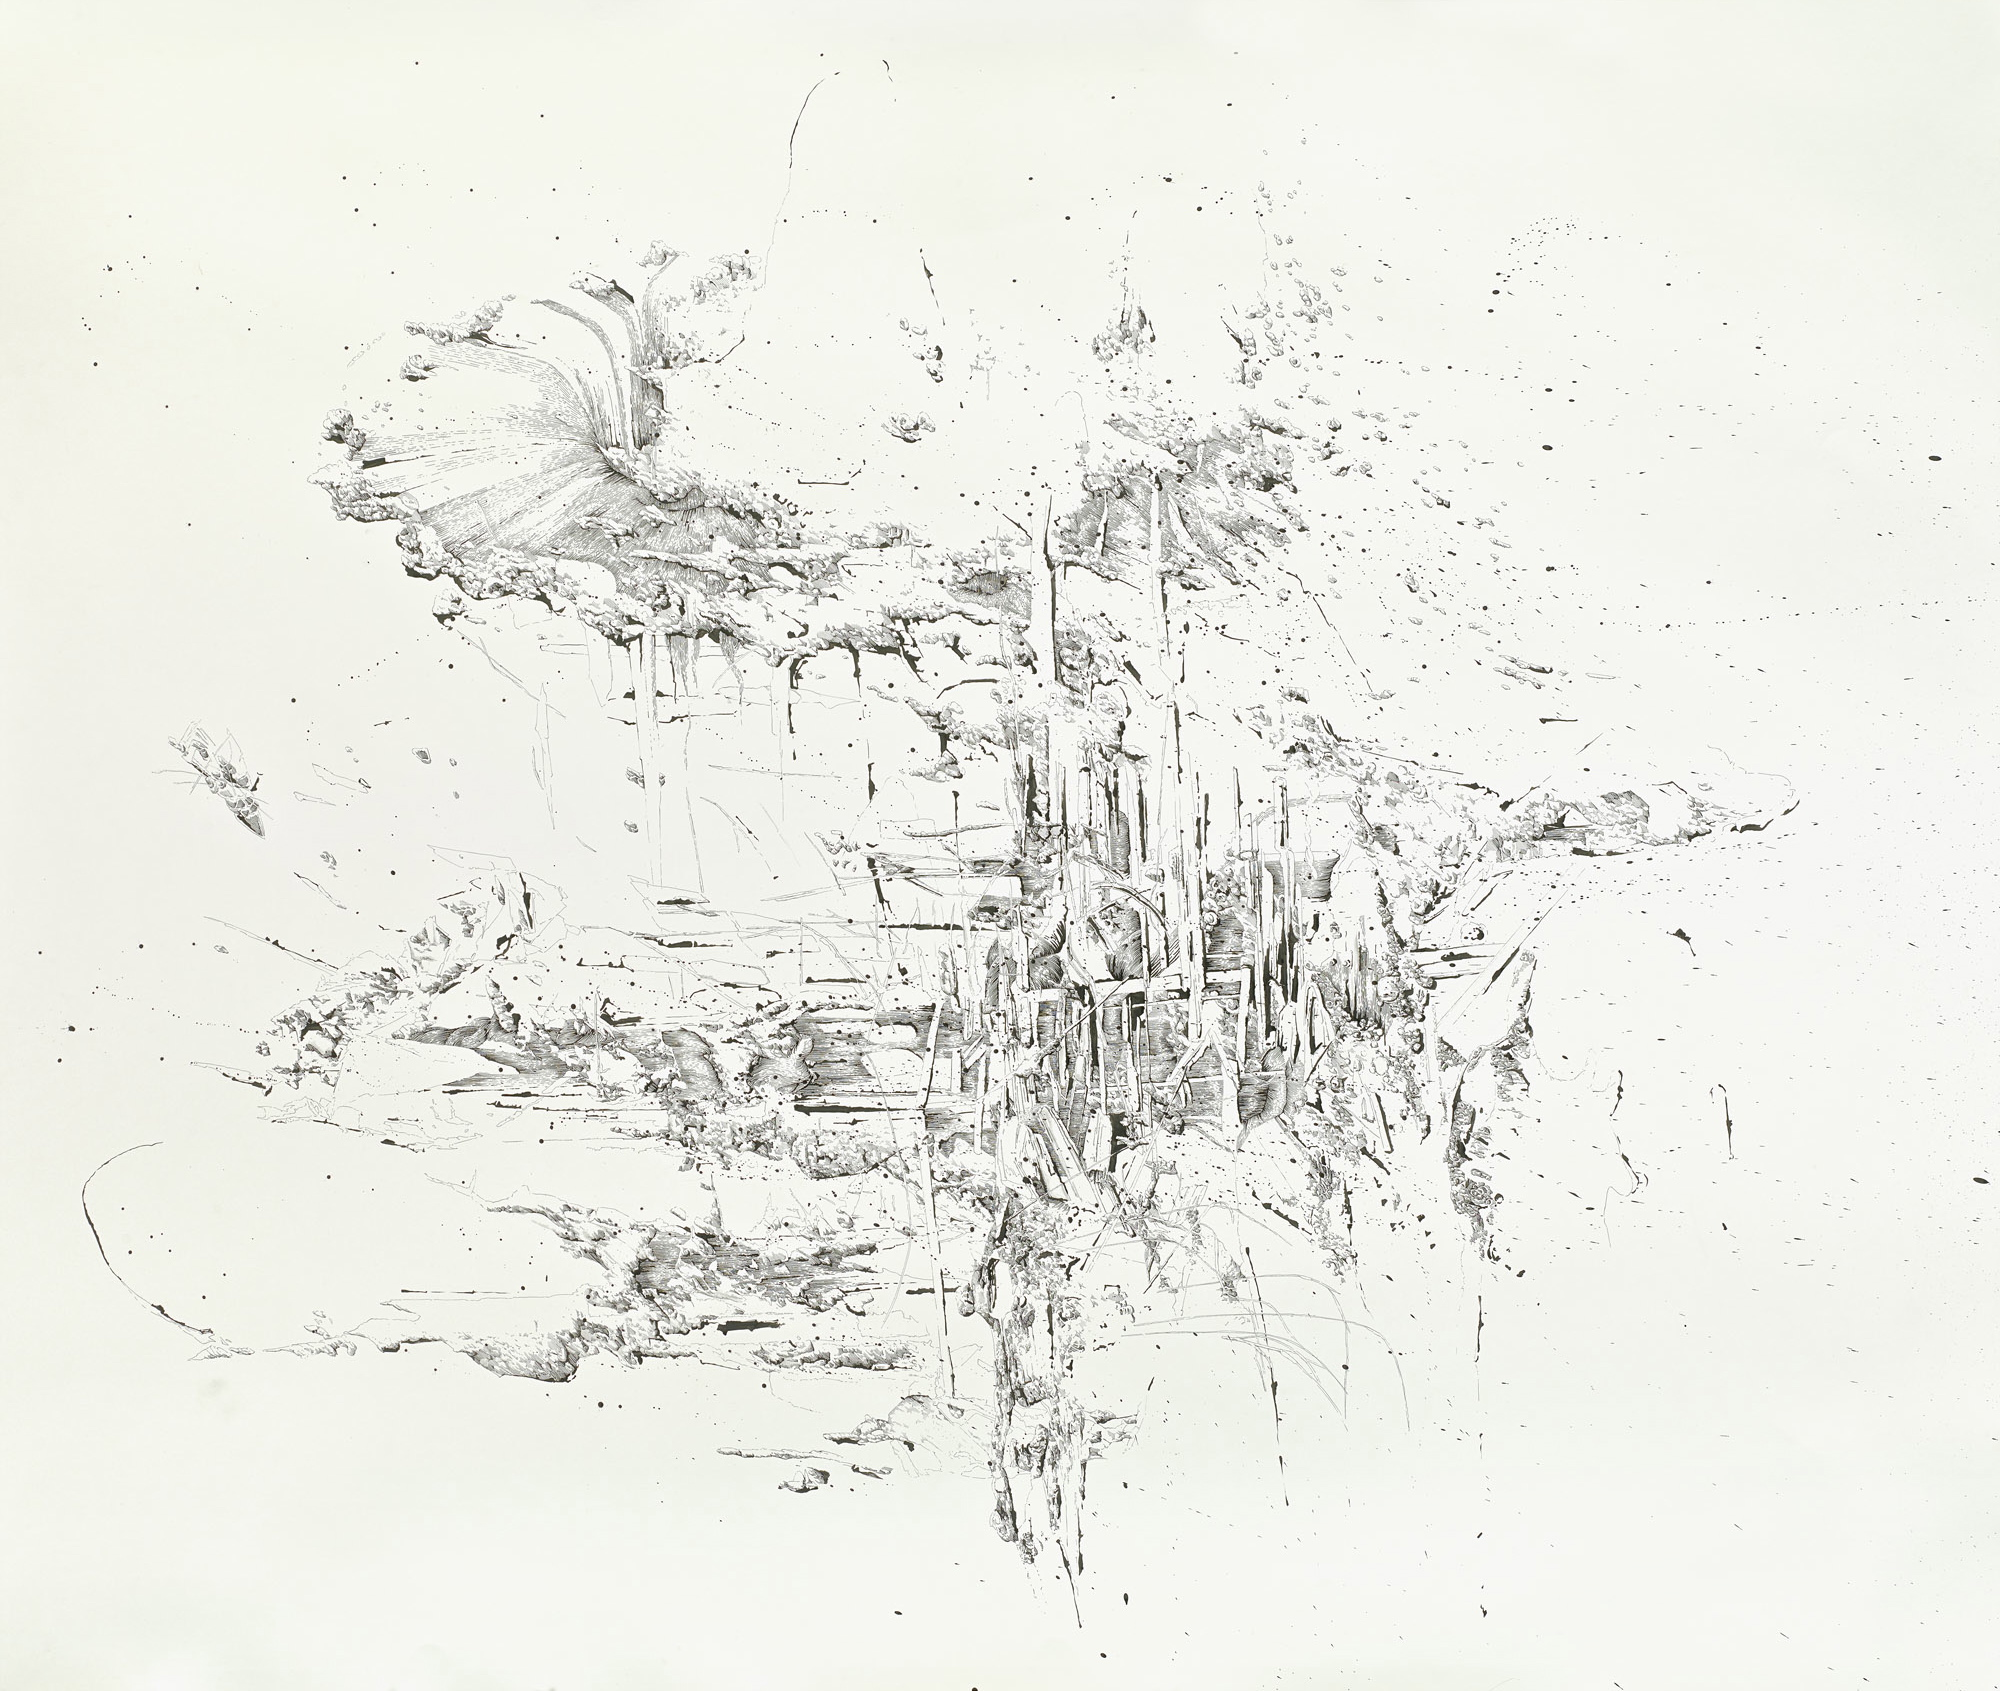 B_K-8788 2_untitled_ink_on_paper_150x200cm_2013